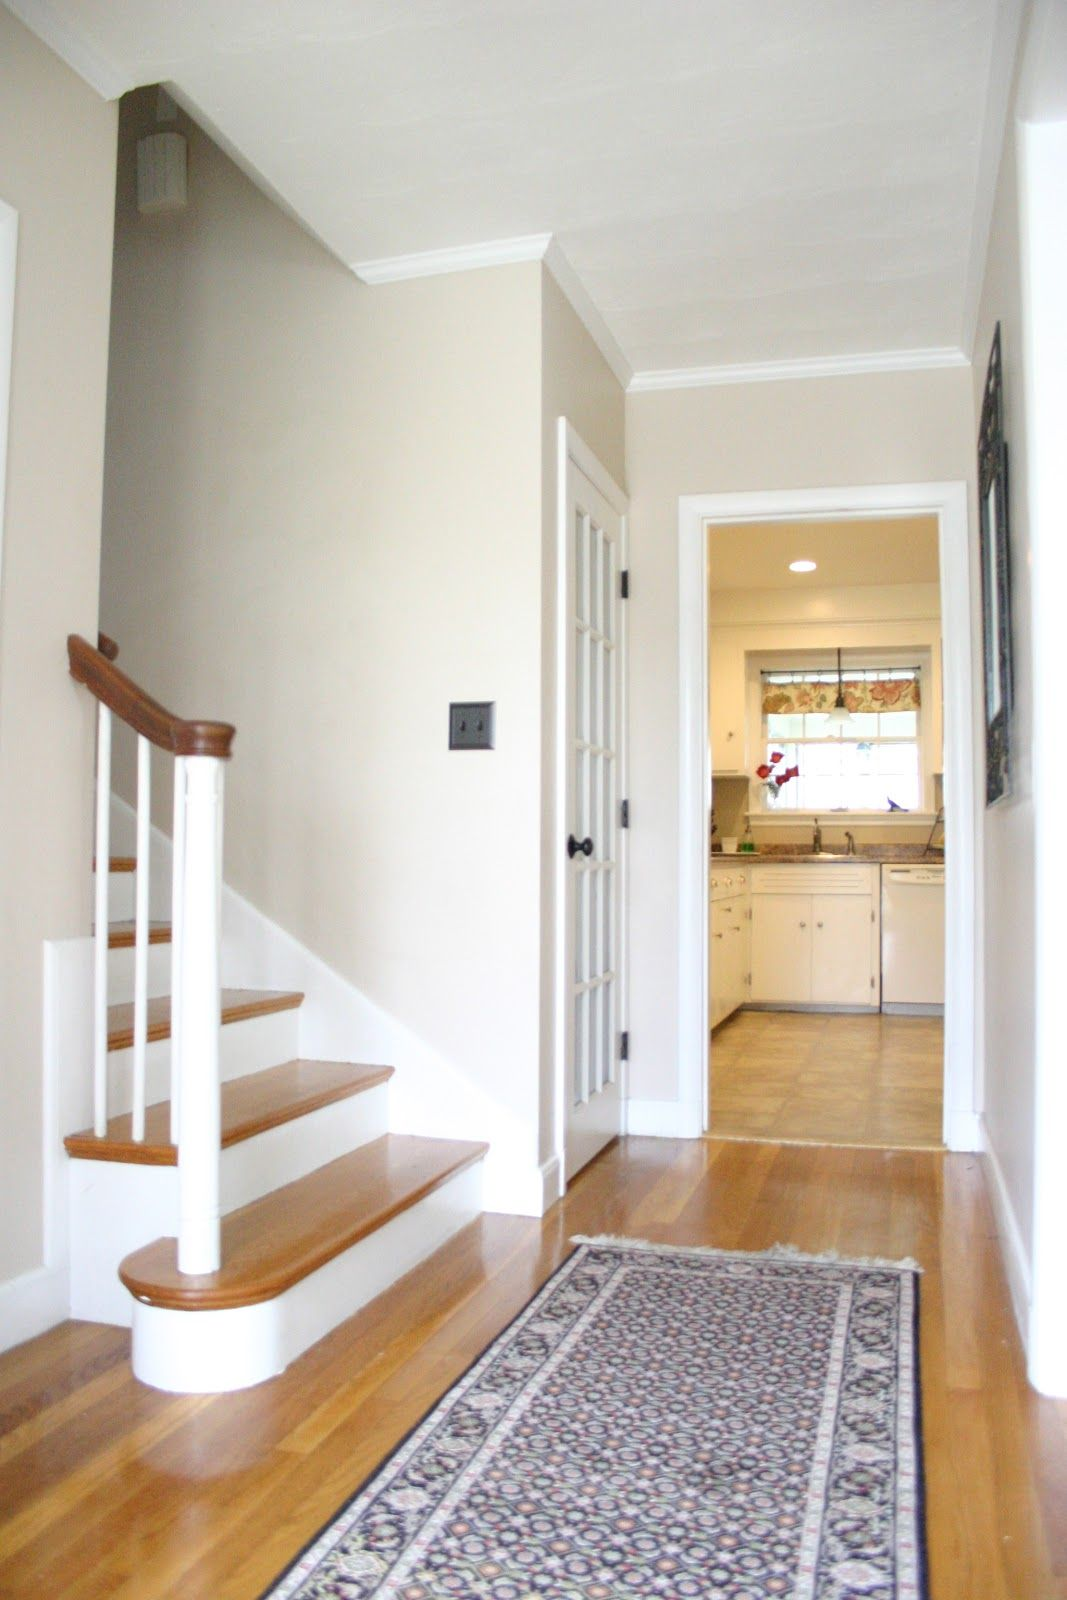 Foyer Wall Paint Ideas : House tour {the foyer future home! pinterest benjamin moore